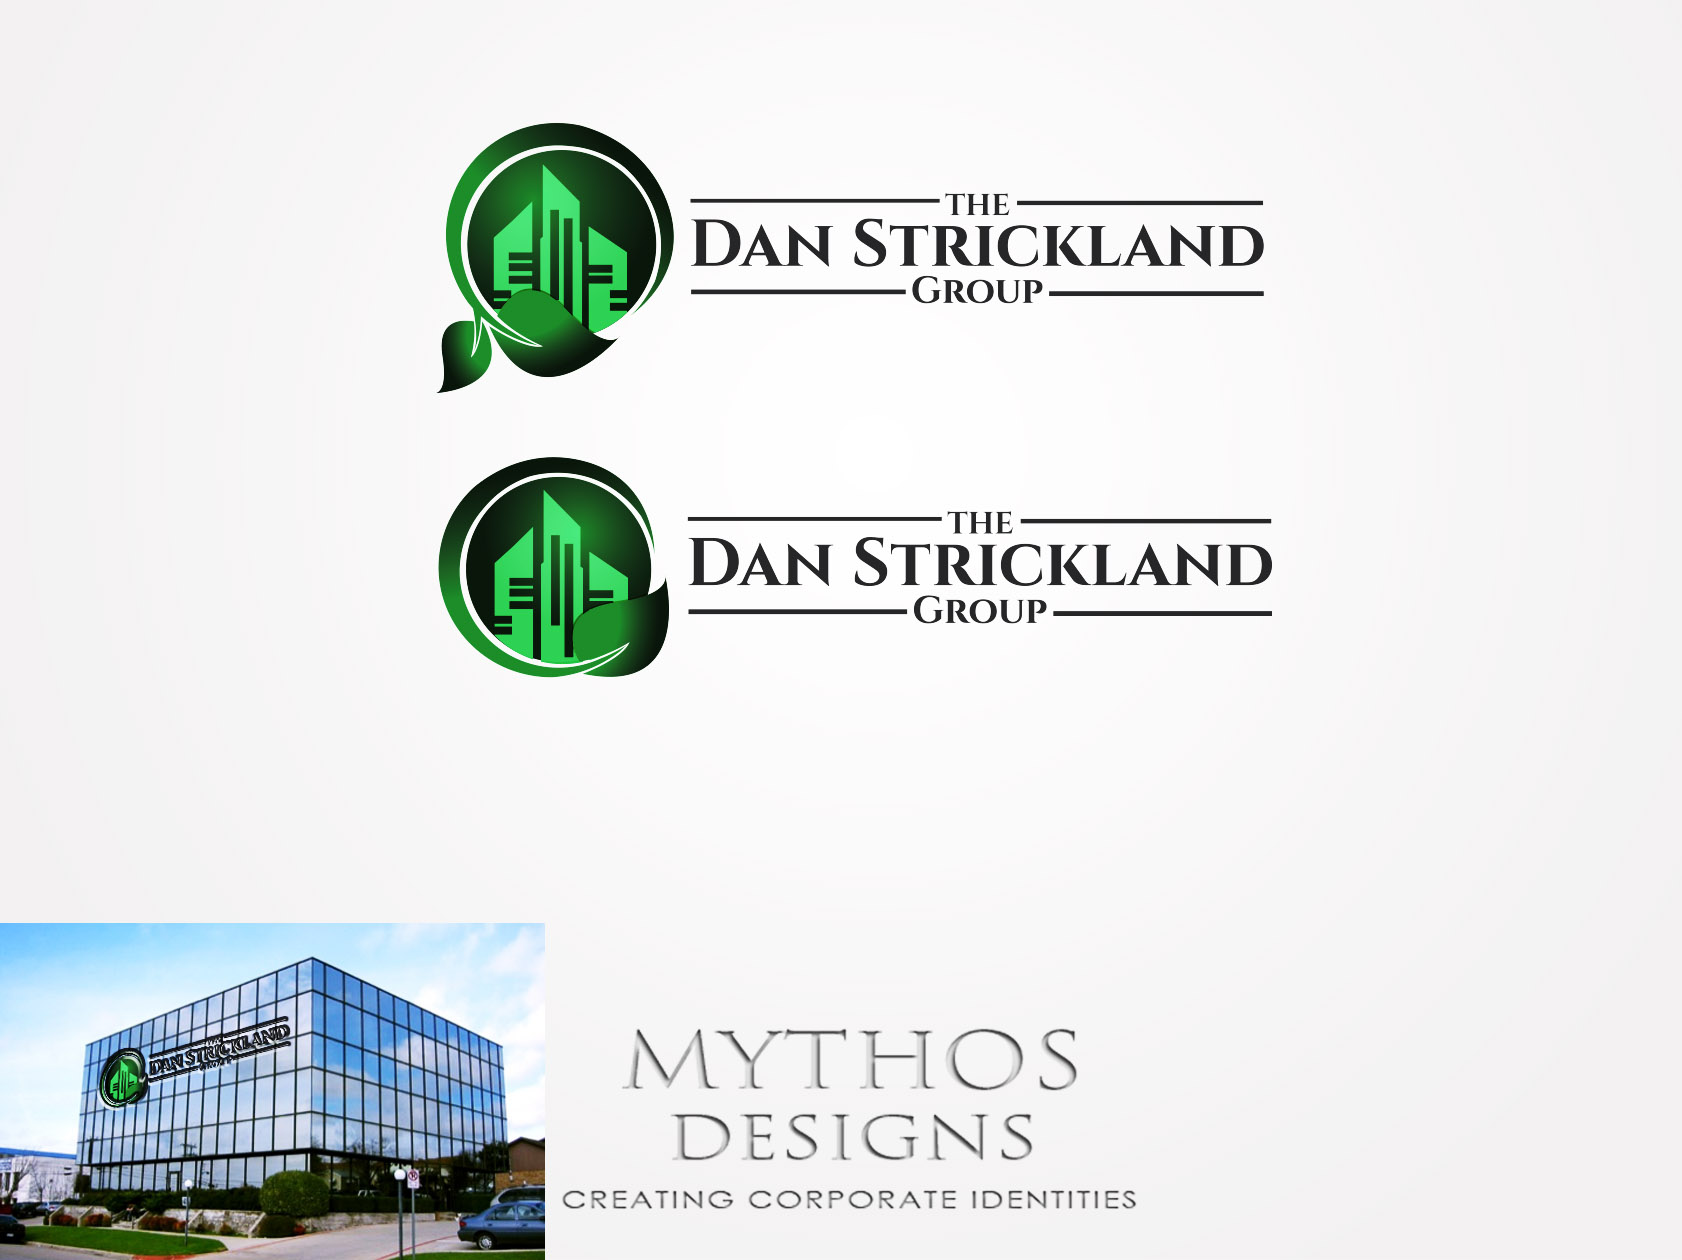 Logo Design by Mythos Designs - Entry No. 179 in the Logo Design Contest Creative Logo Design for The Dan Strickland Group.